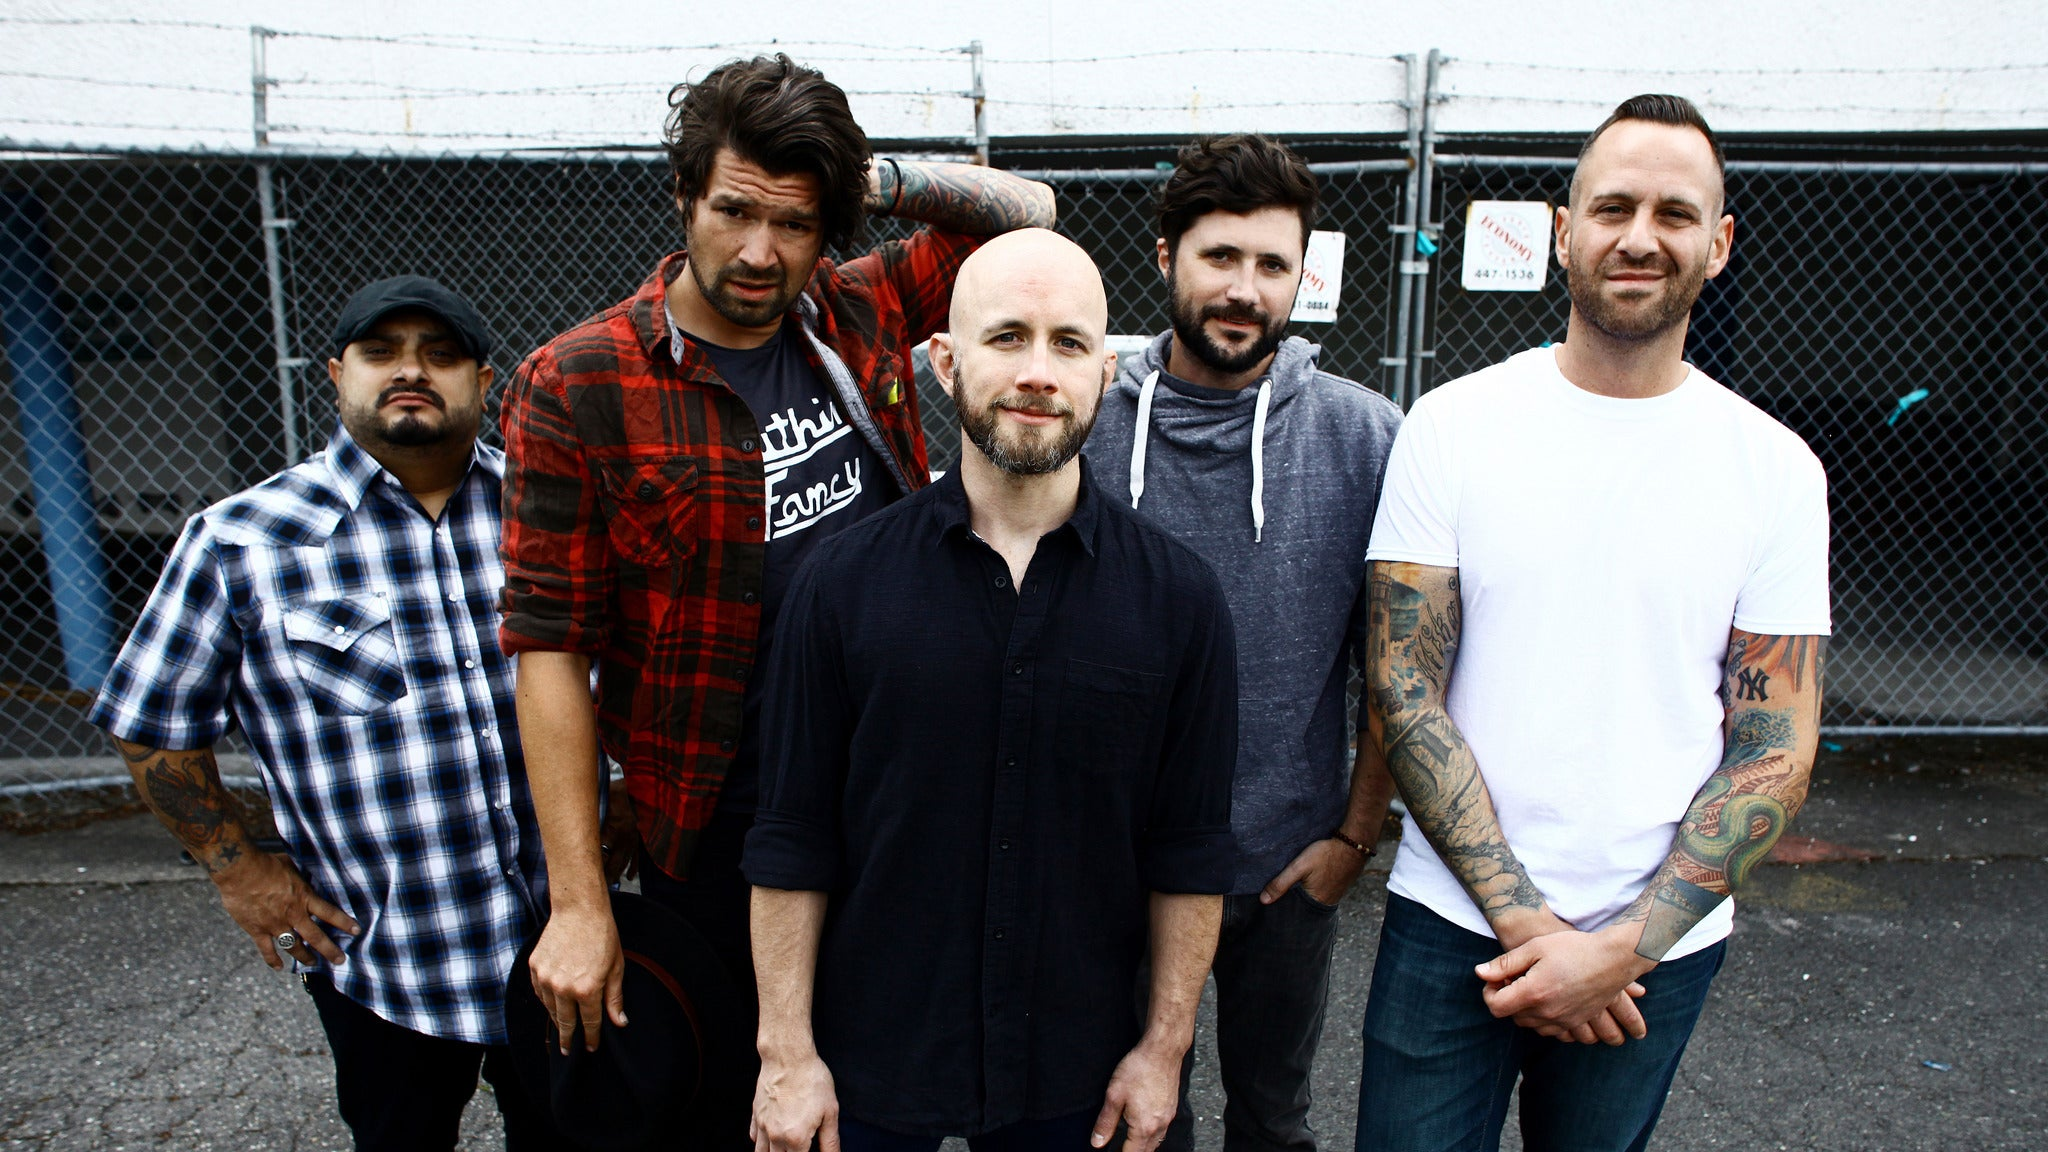 106.7 KROQ Presents Taking Back Sunday at The Wiltern